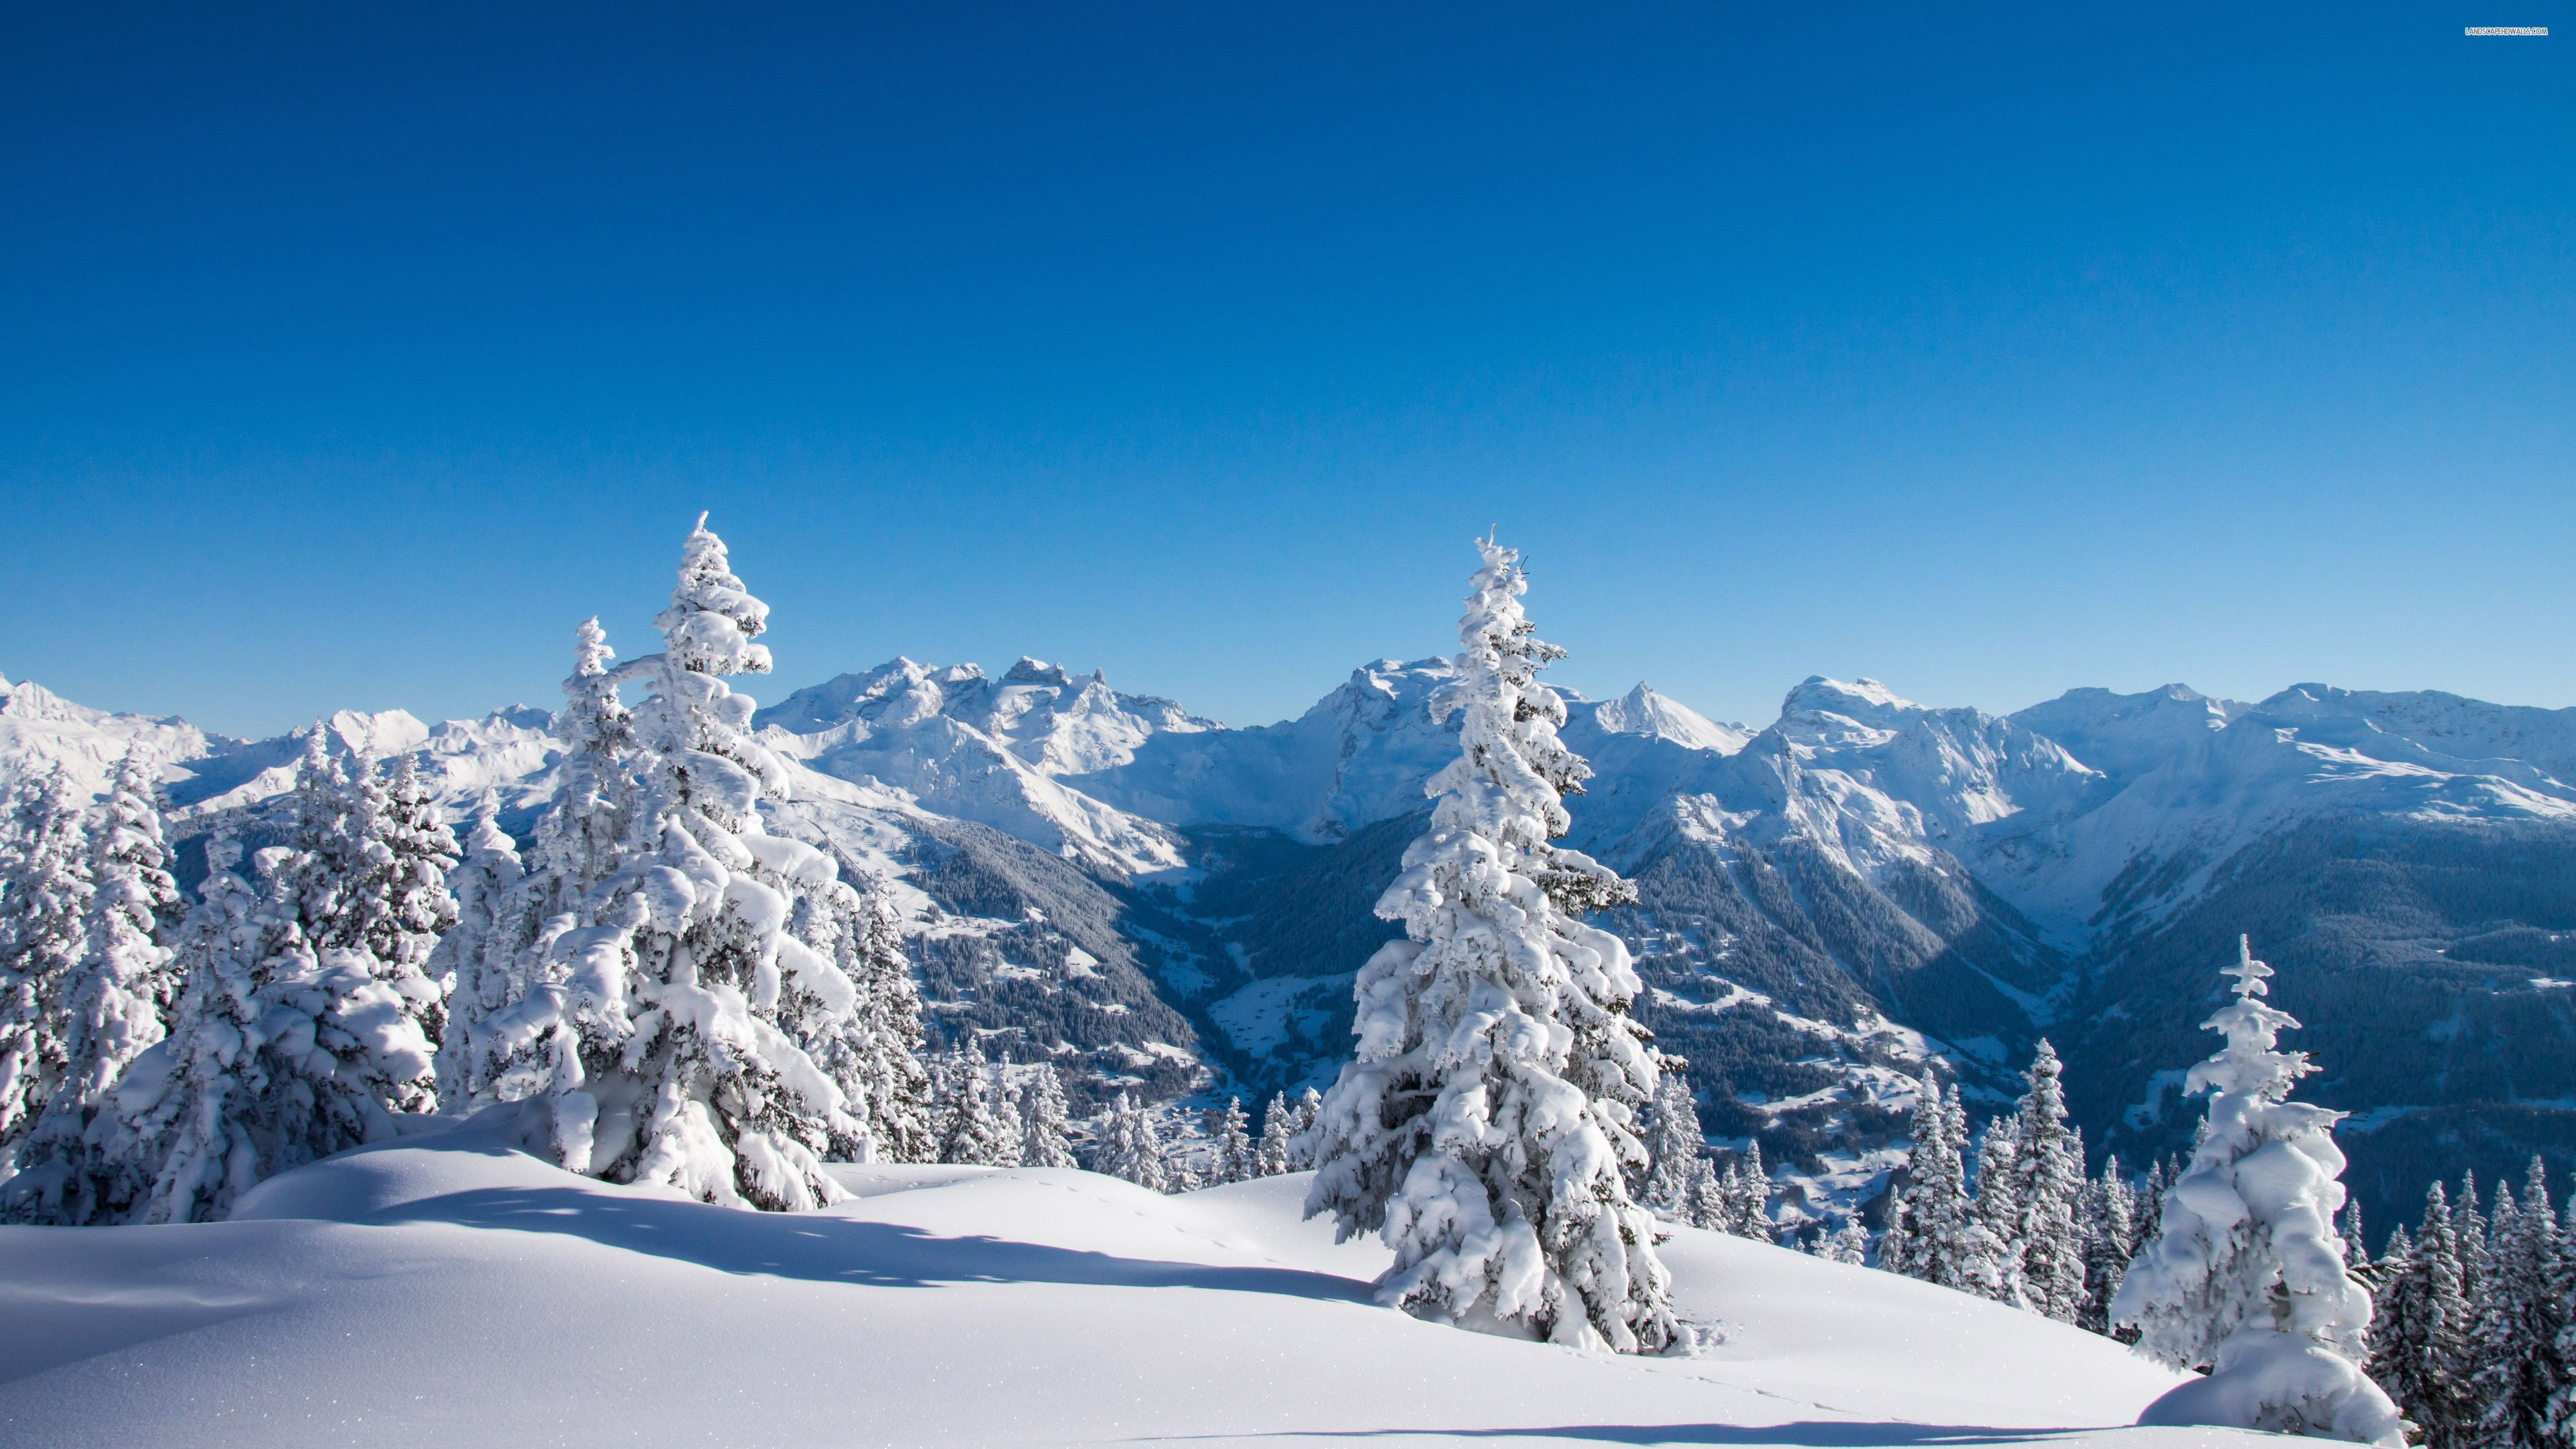 Beautiful View Over The Mountains In Winter - WallDevil